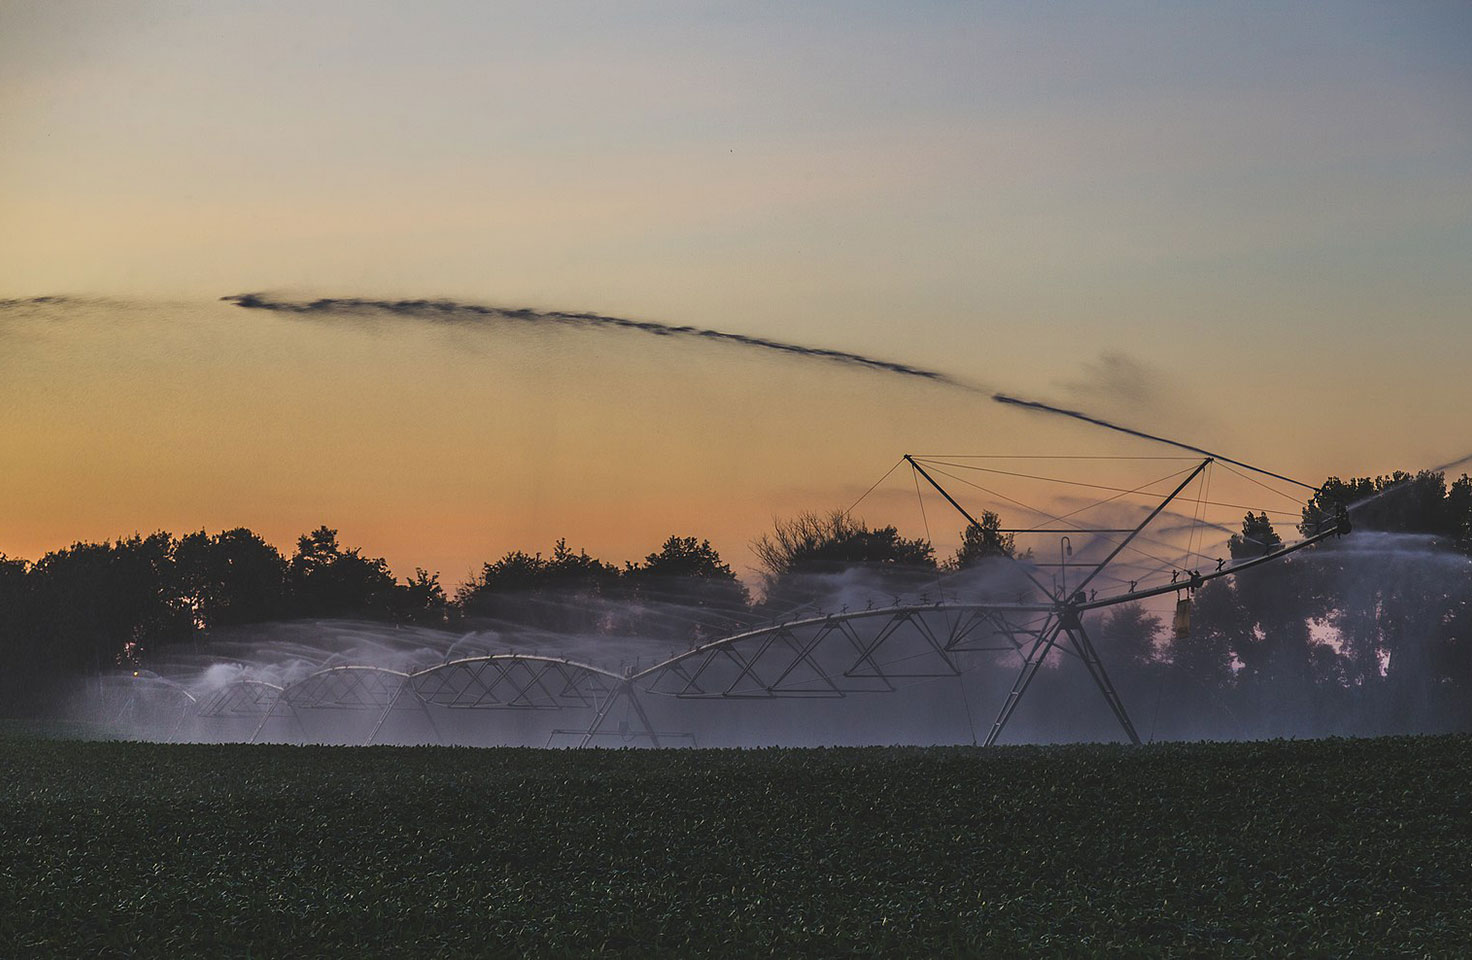 Photo of agriculture crop irrigation system spraying water